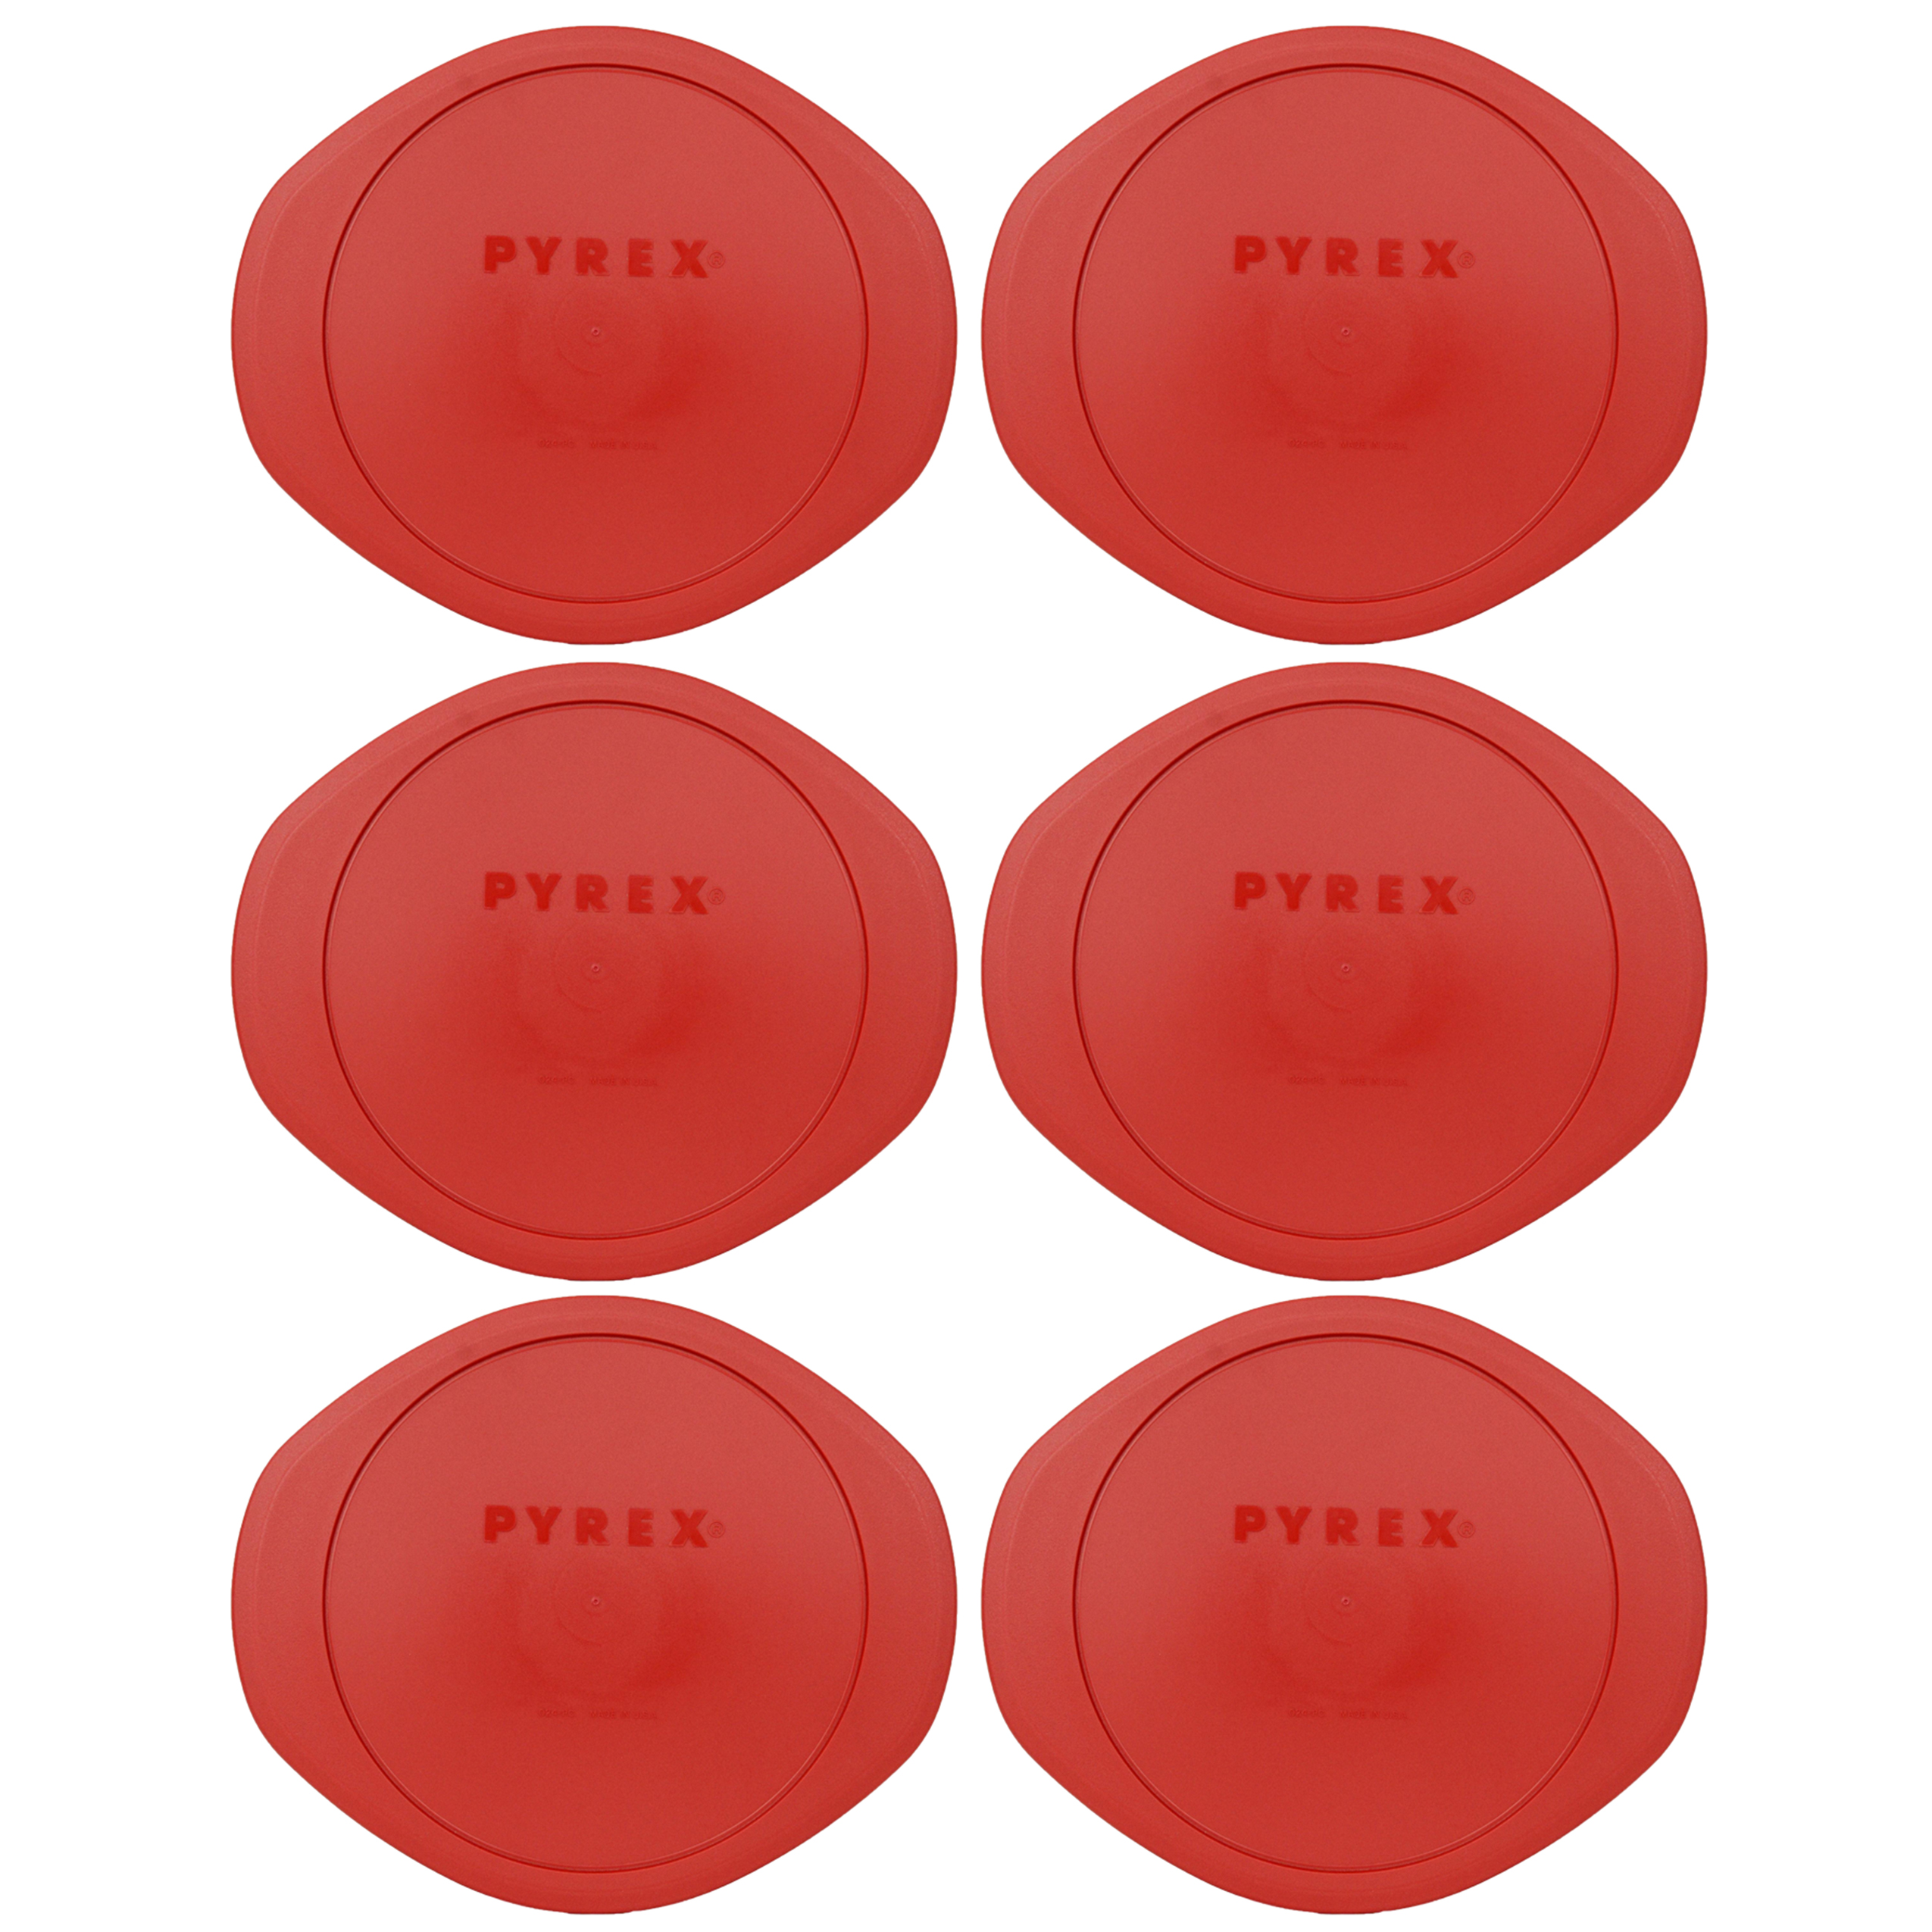 Pyrex Replacement Lid 024-PC Red Plastic Cover 6-Pack for Pyrex 2 Quart Glass Dish (Sold Separately)